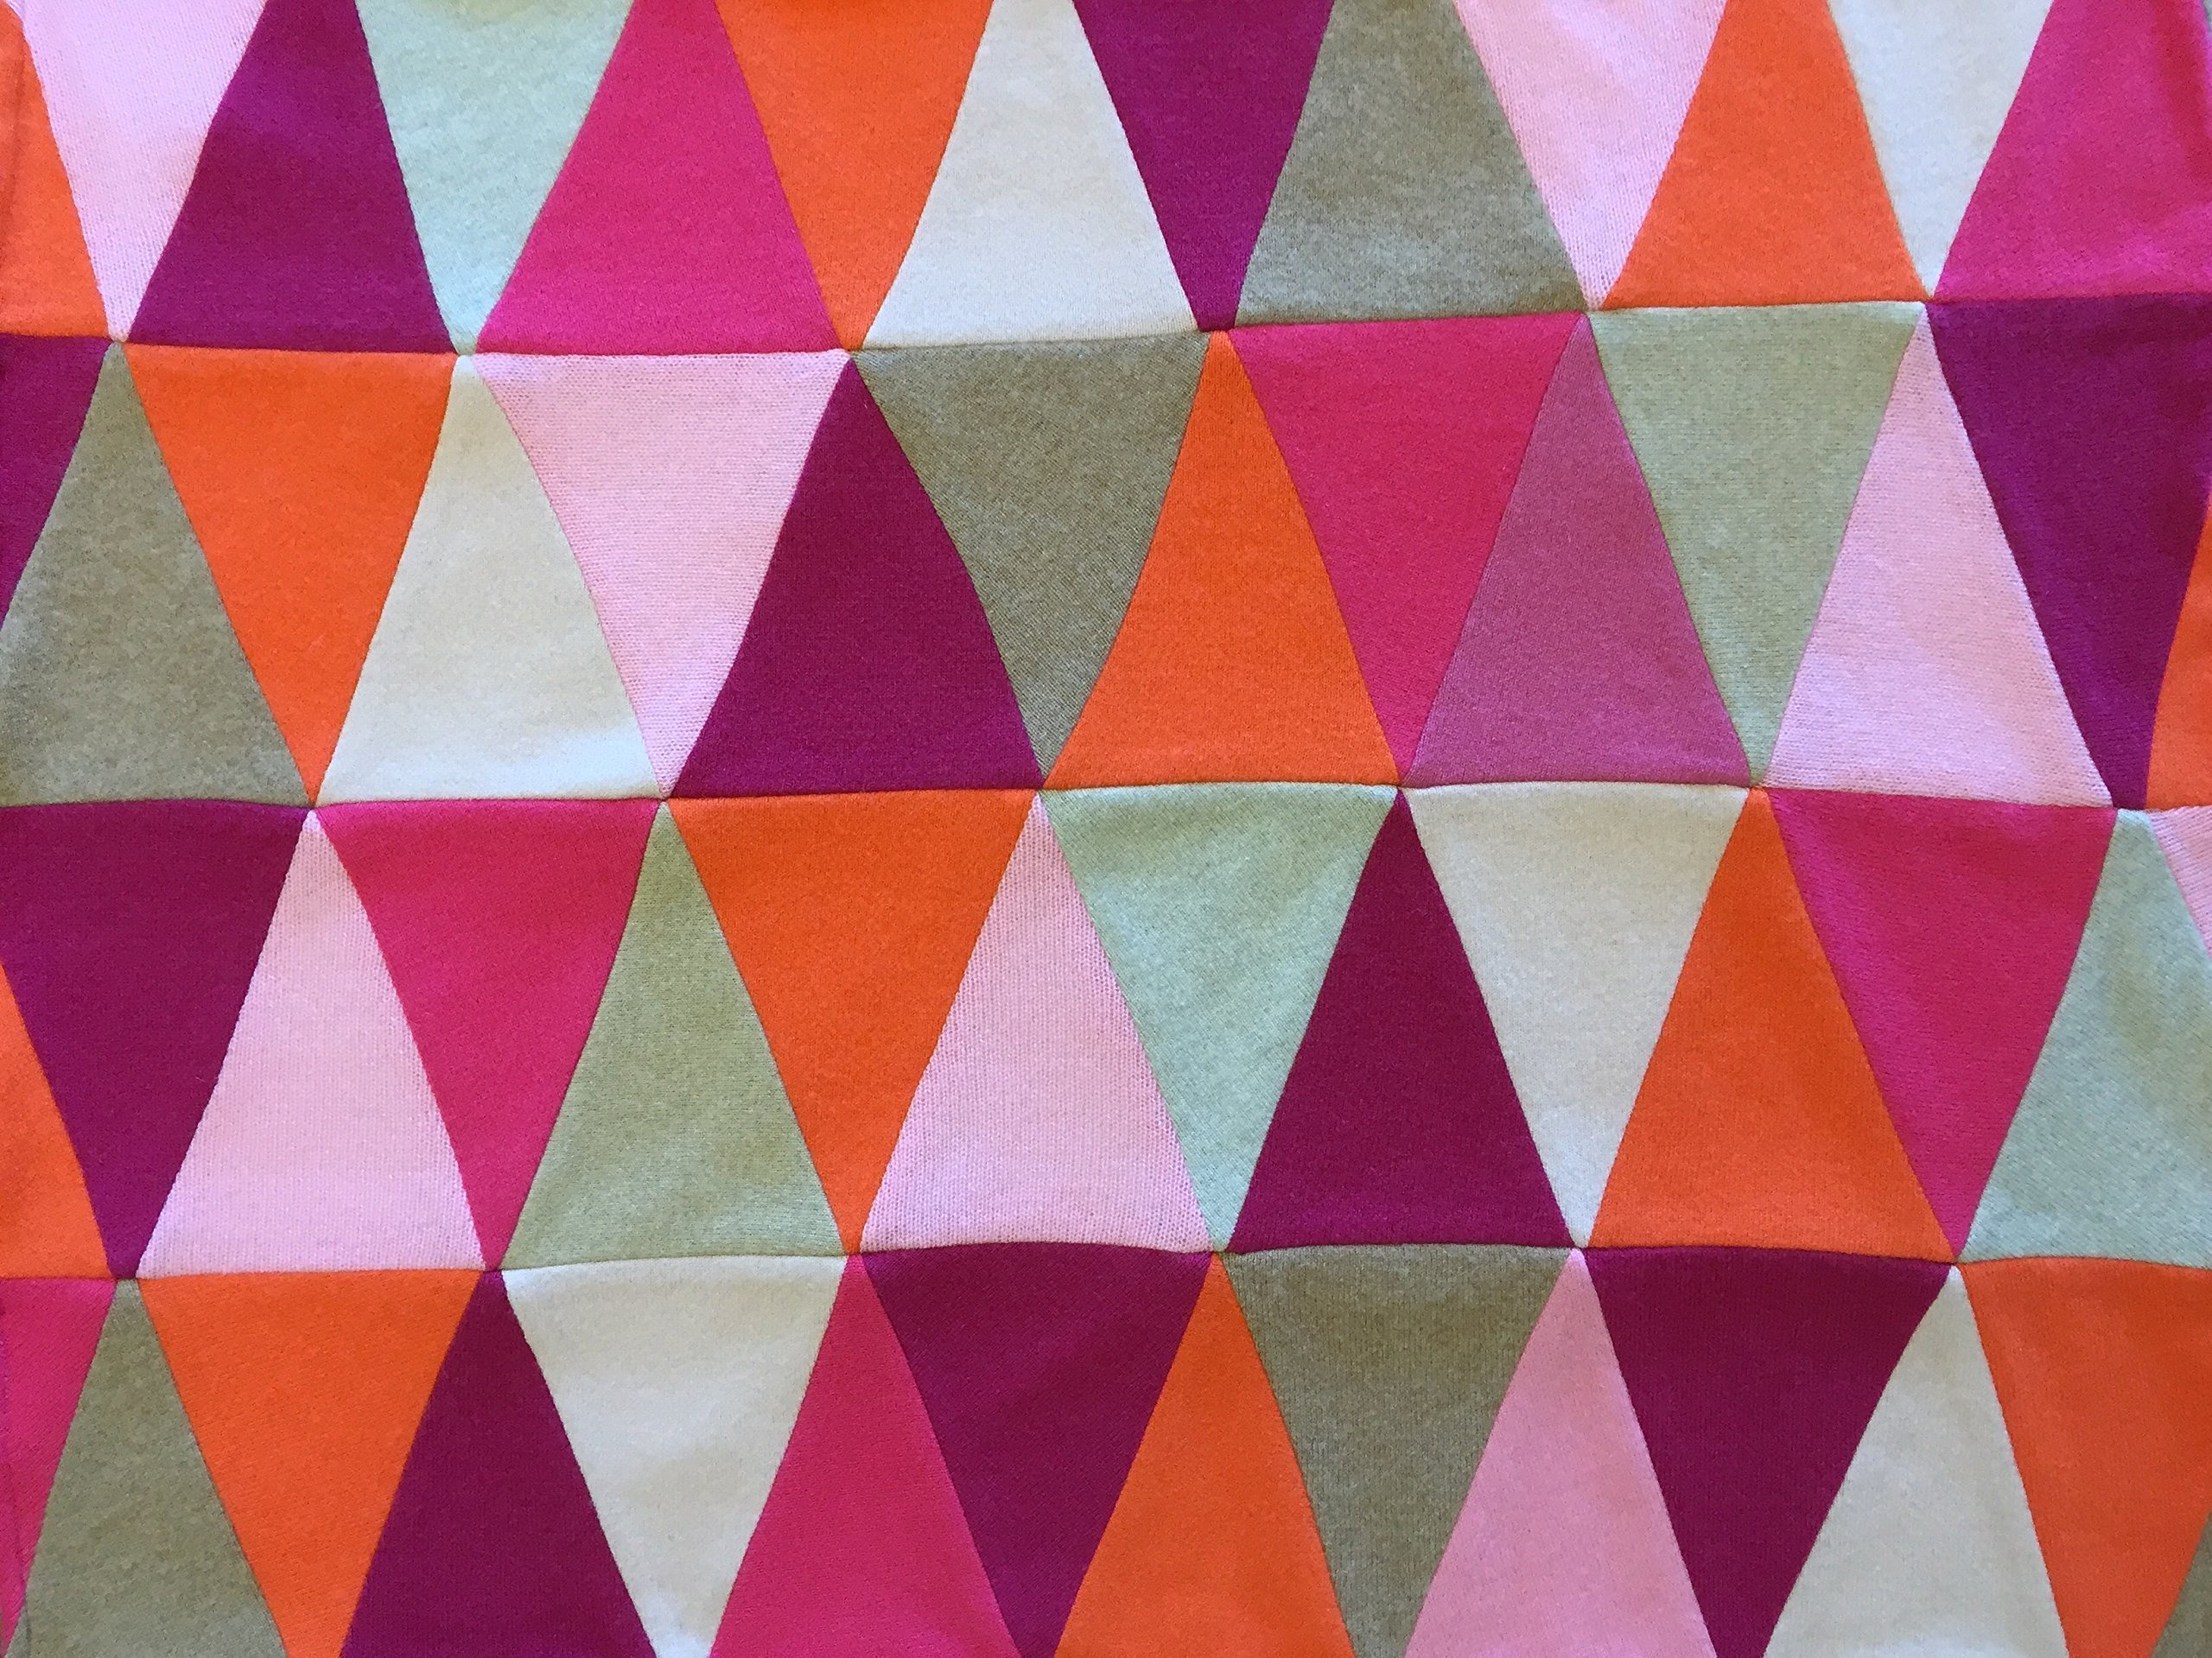 Triangle 100% Cashmere Baby Blanket Patchwork Quilt - Made to Order Custom Colors - Pink Orange Beige